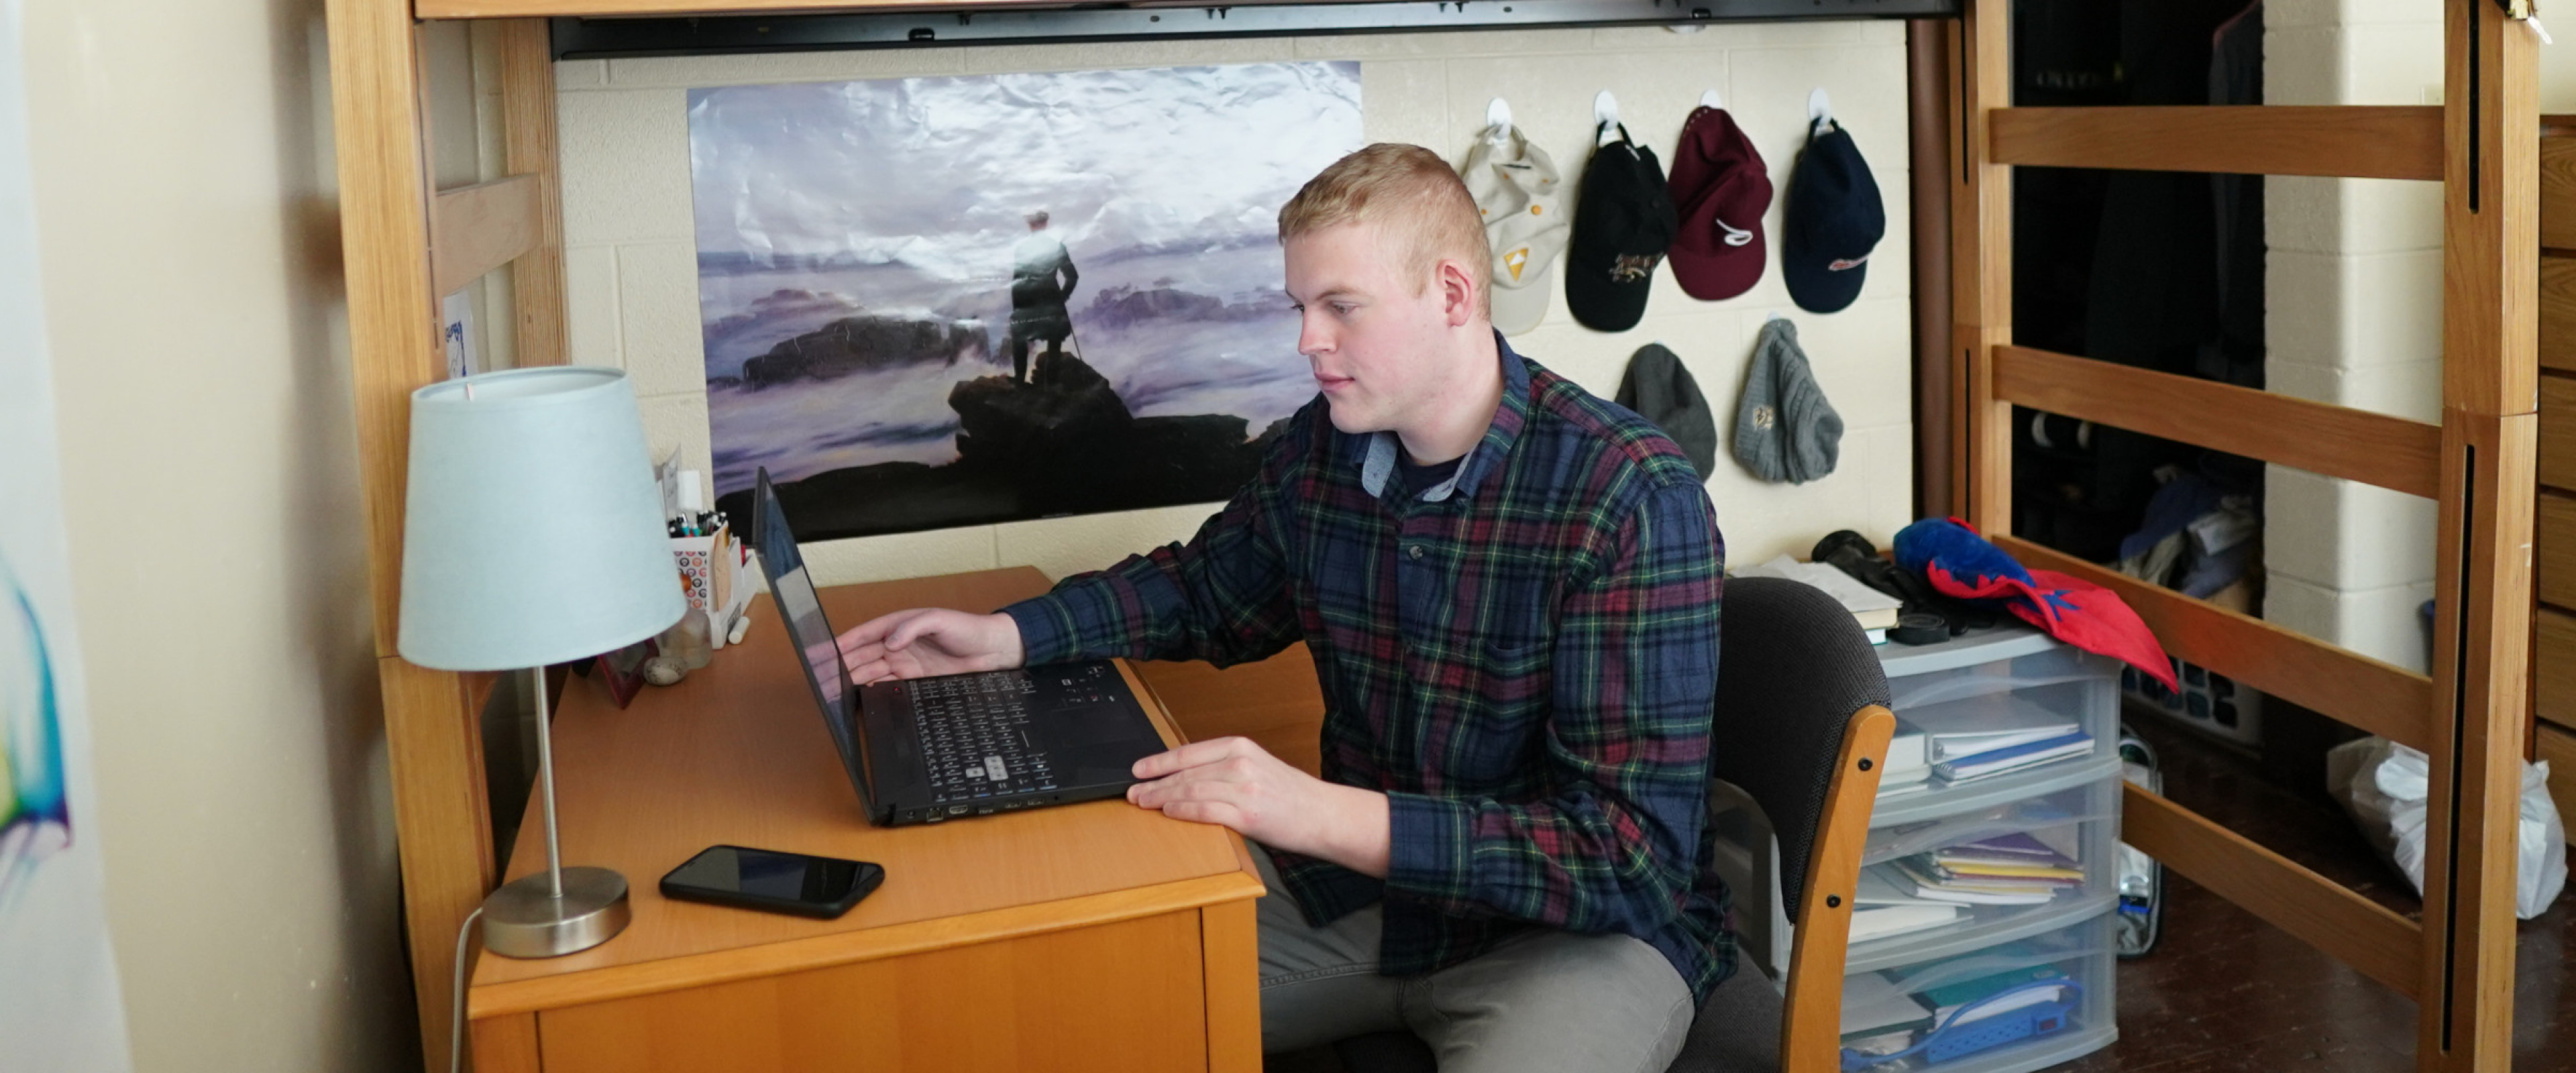 Student sitting at desk with laptop in their residence hall room